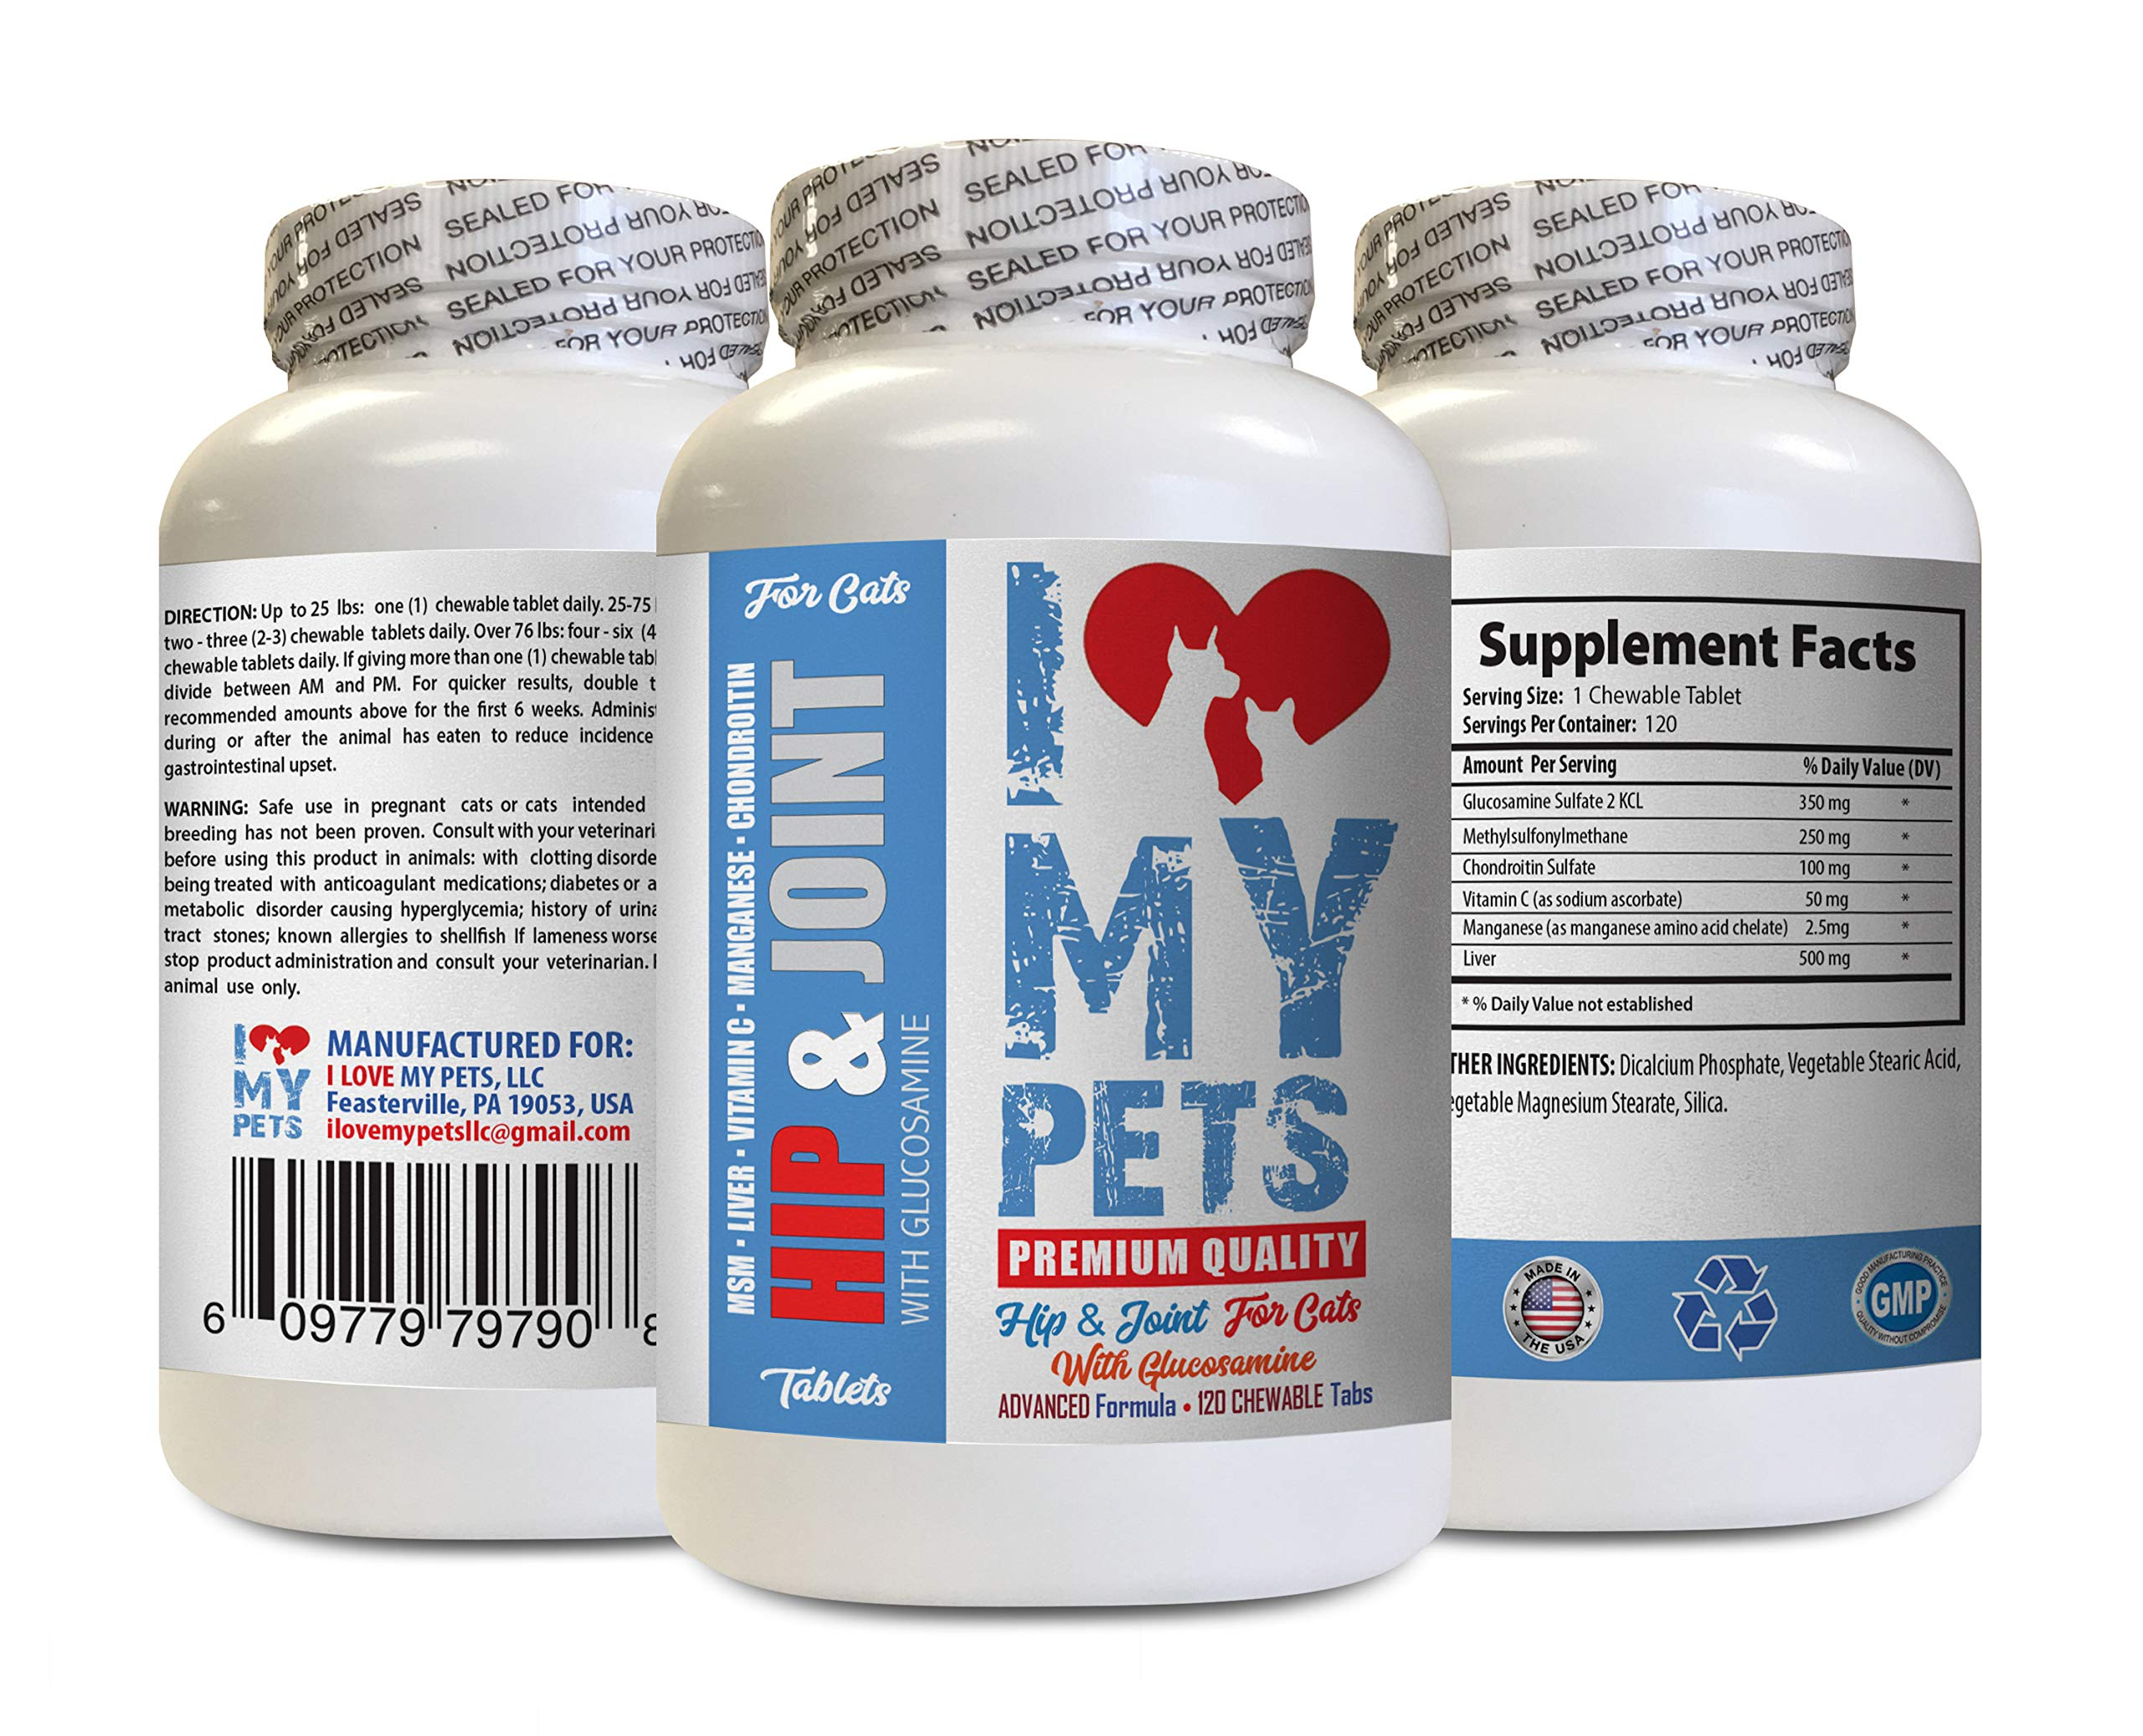 I LOVE MY PETS LLC Senior cat Vitamins - CAT Hip and Joint Support - Best Strong Formula - Calcium for Cats - 120 Treats (1 Bottle) by I LOVE MY PETS LLC